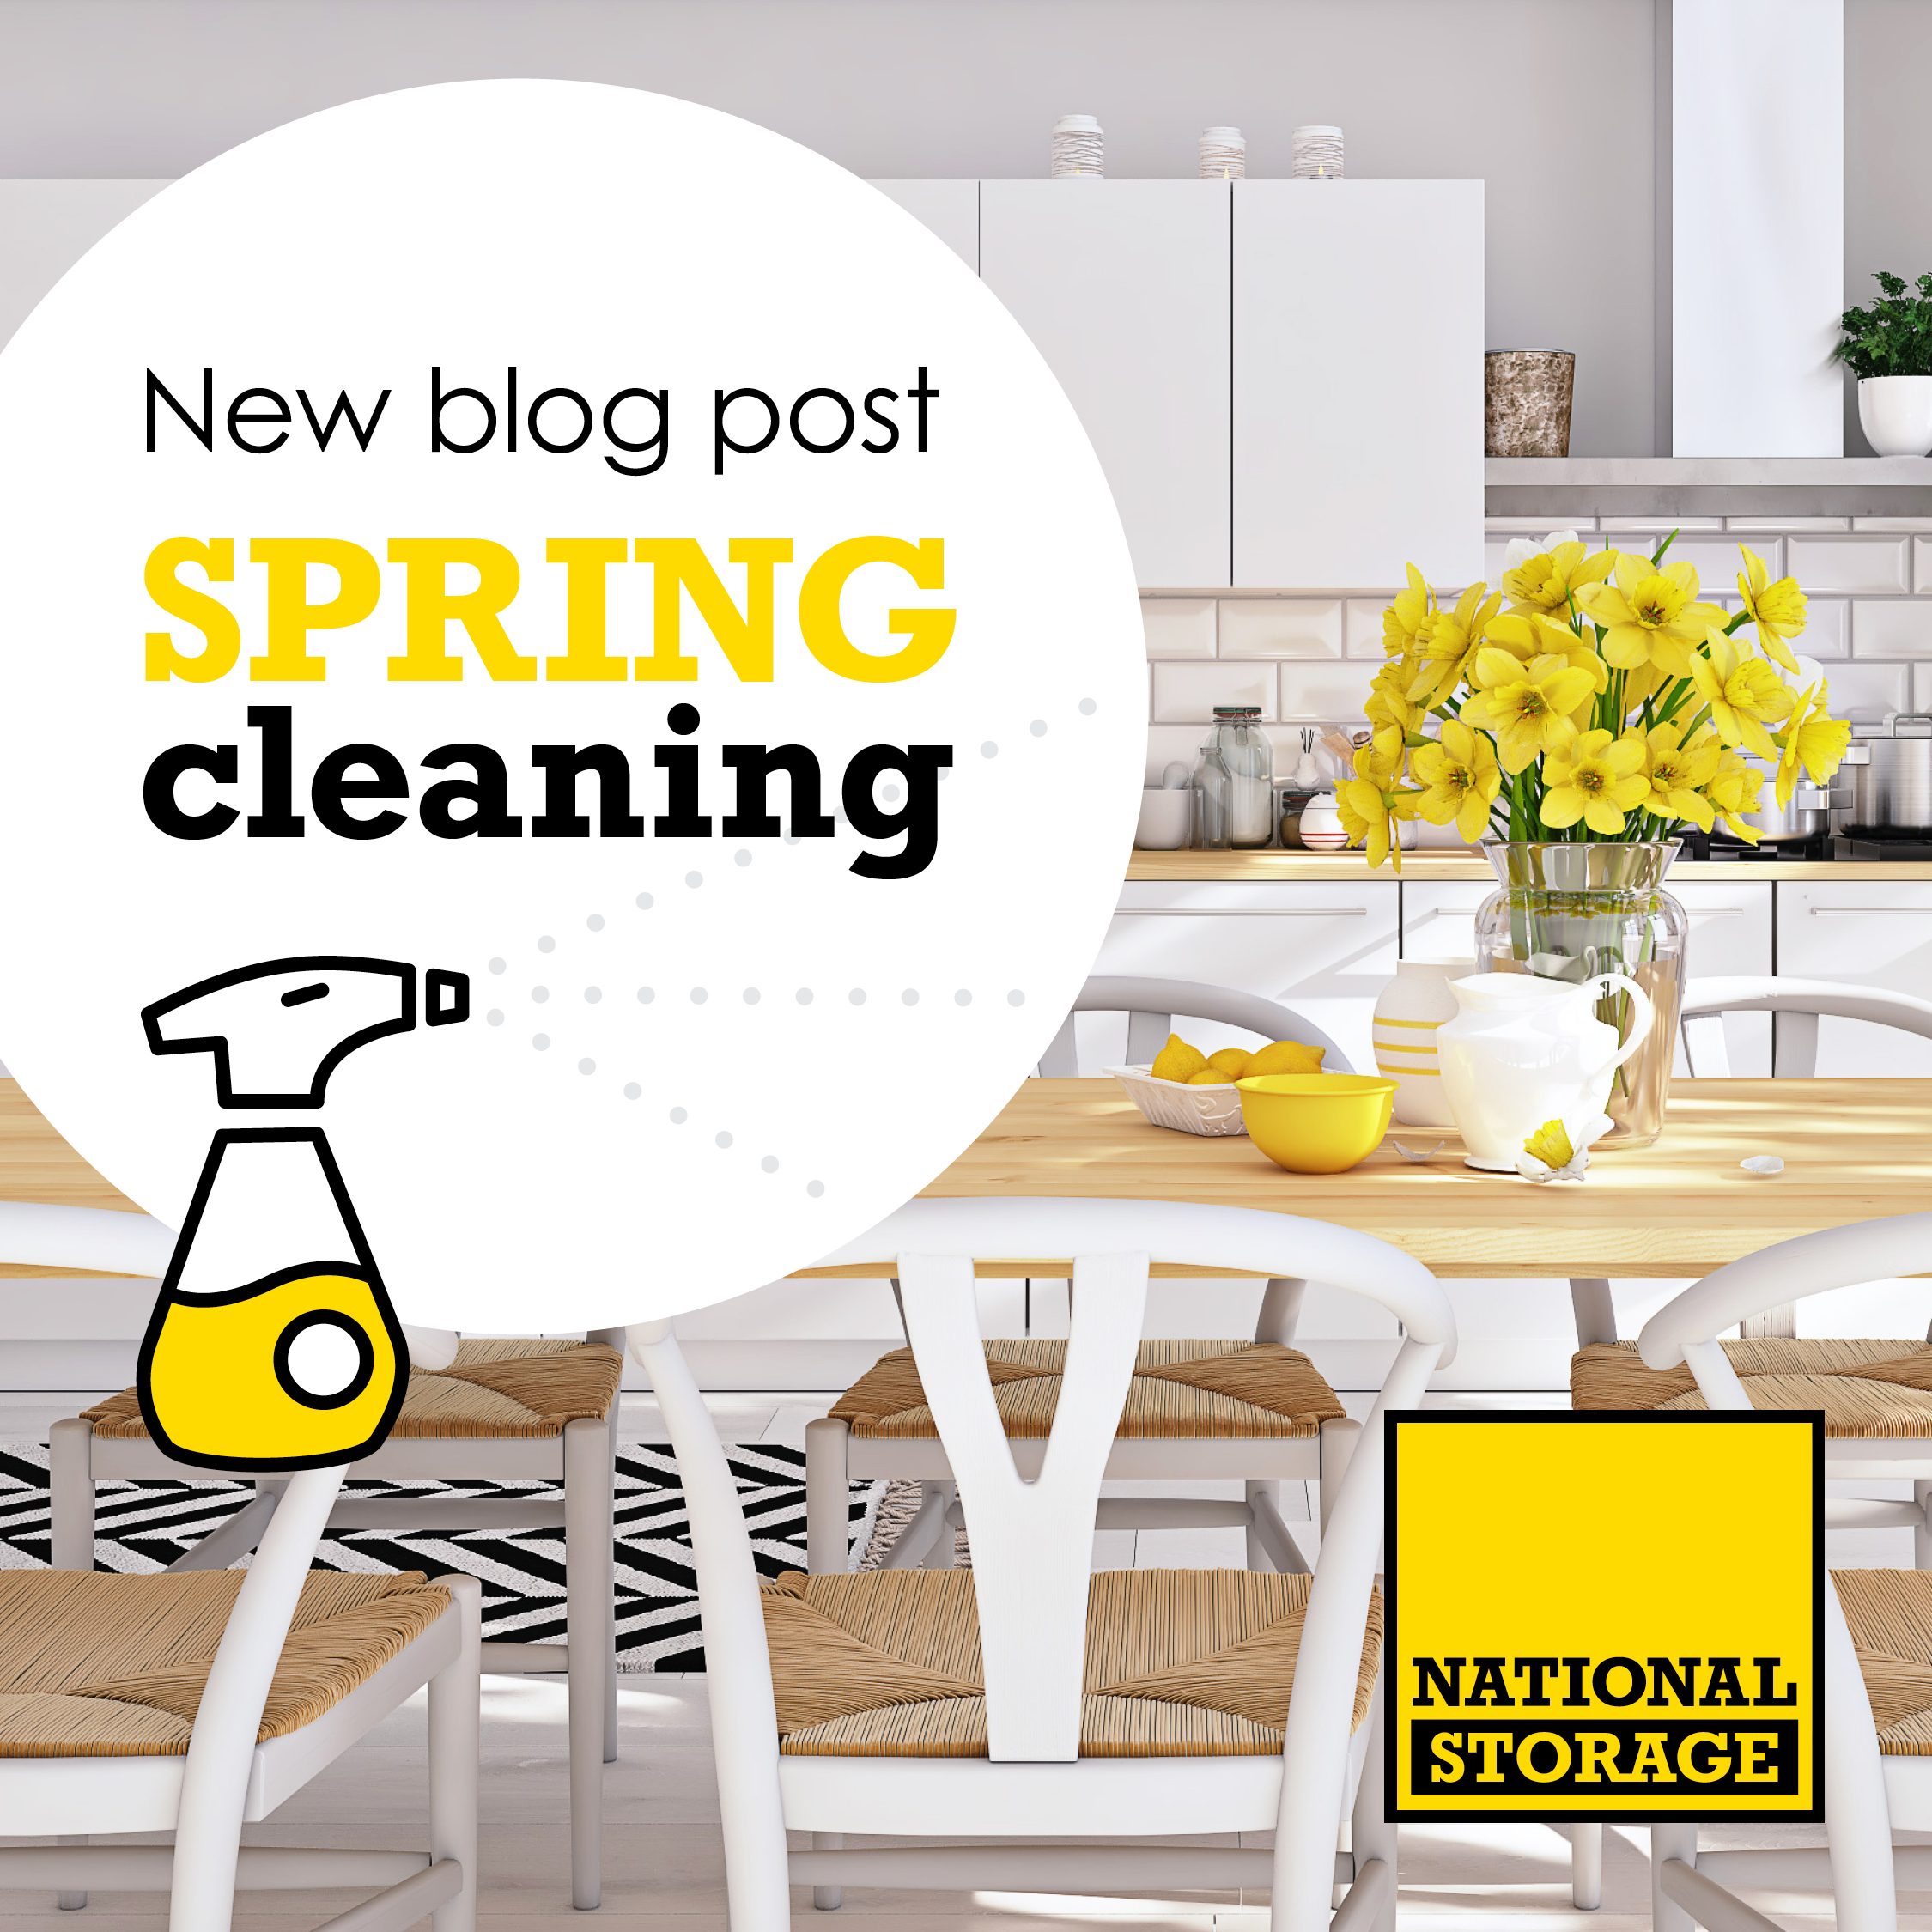 NS Blog Spring Cleaning Social Media Tile 1080x1080px